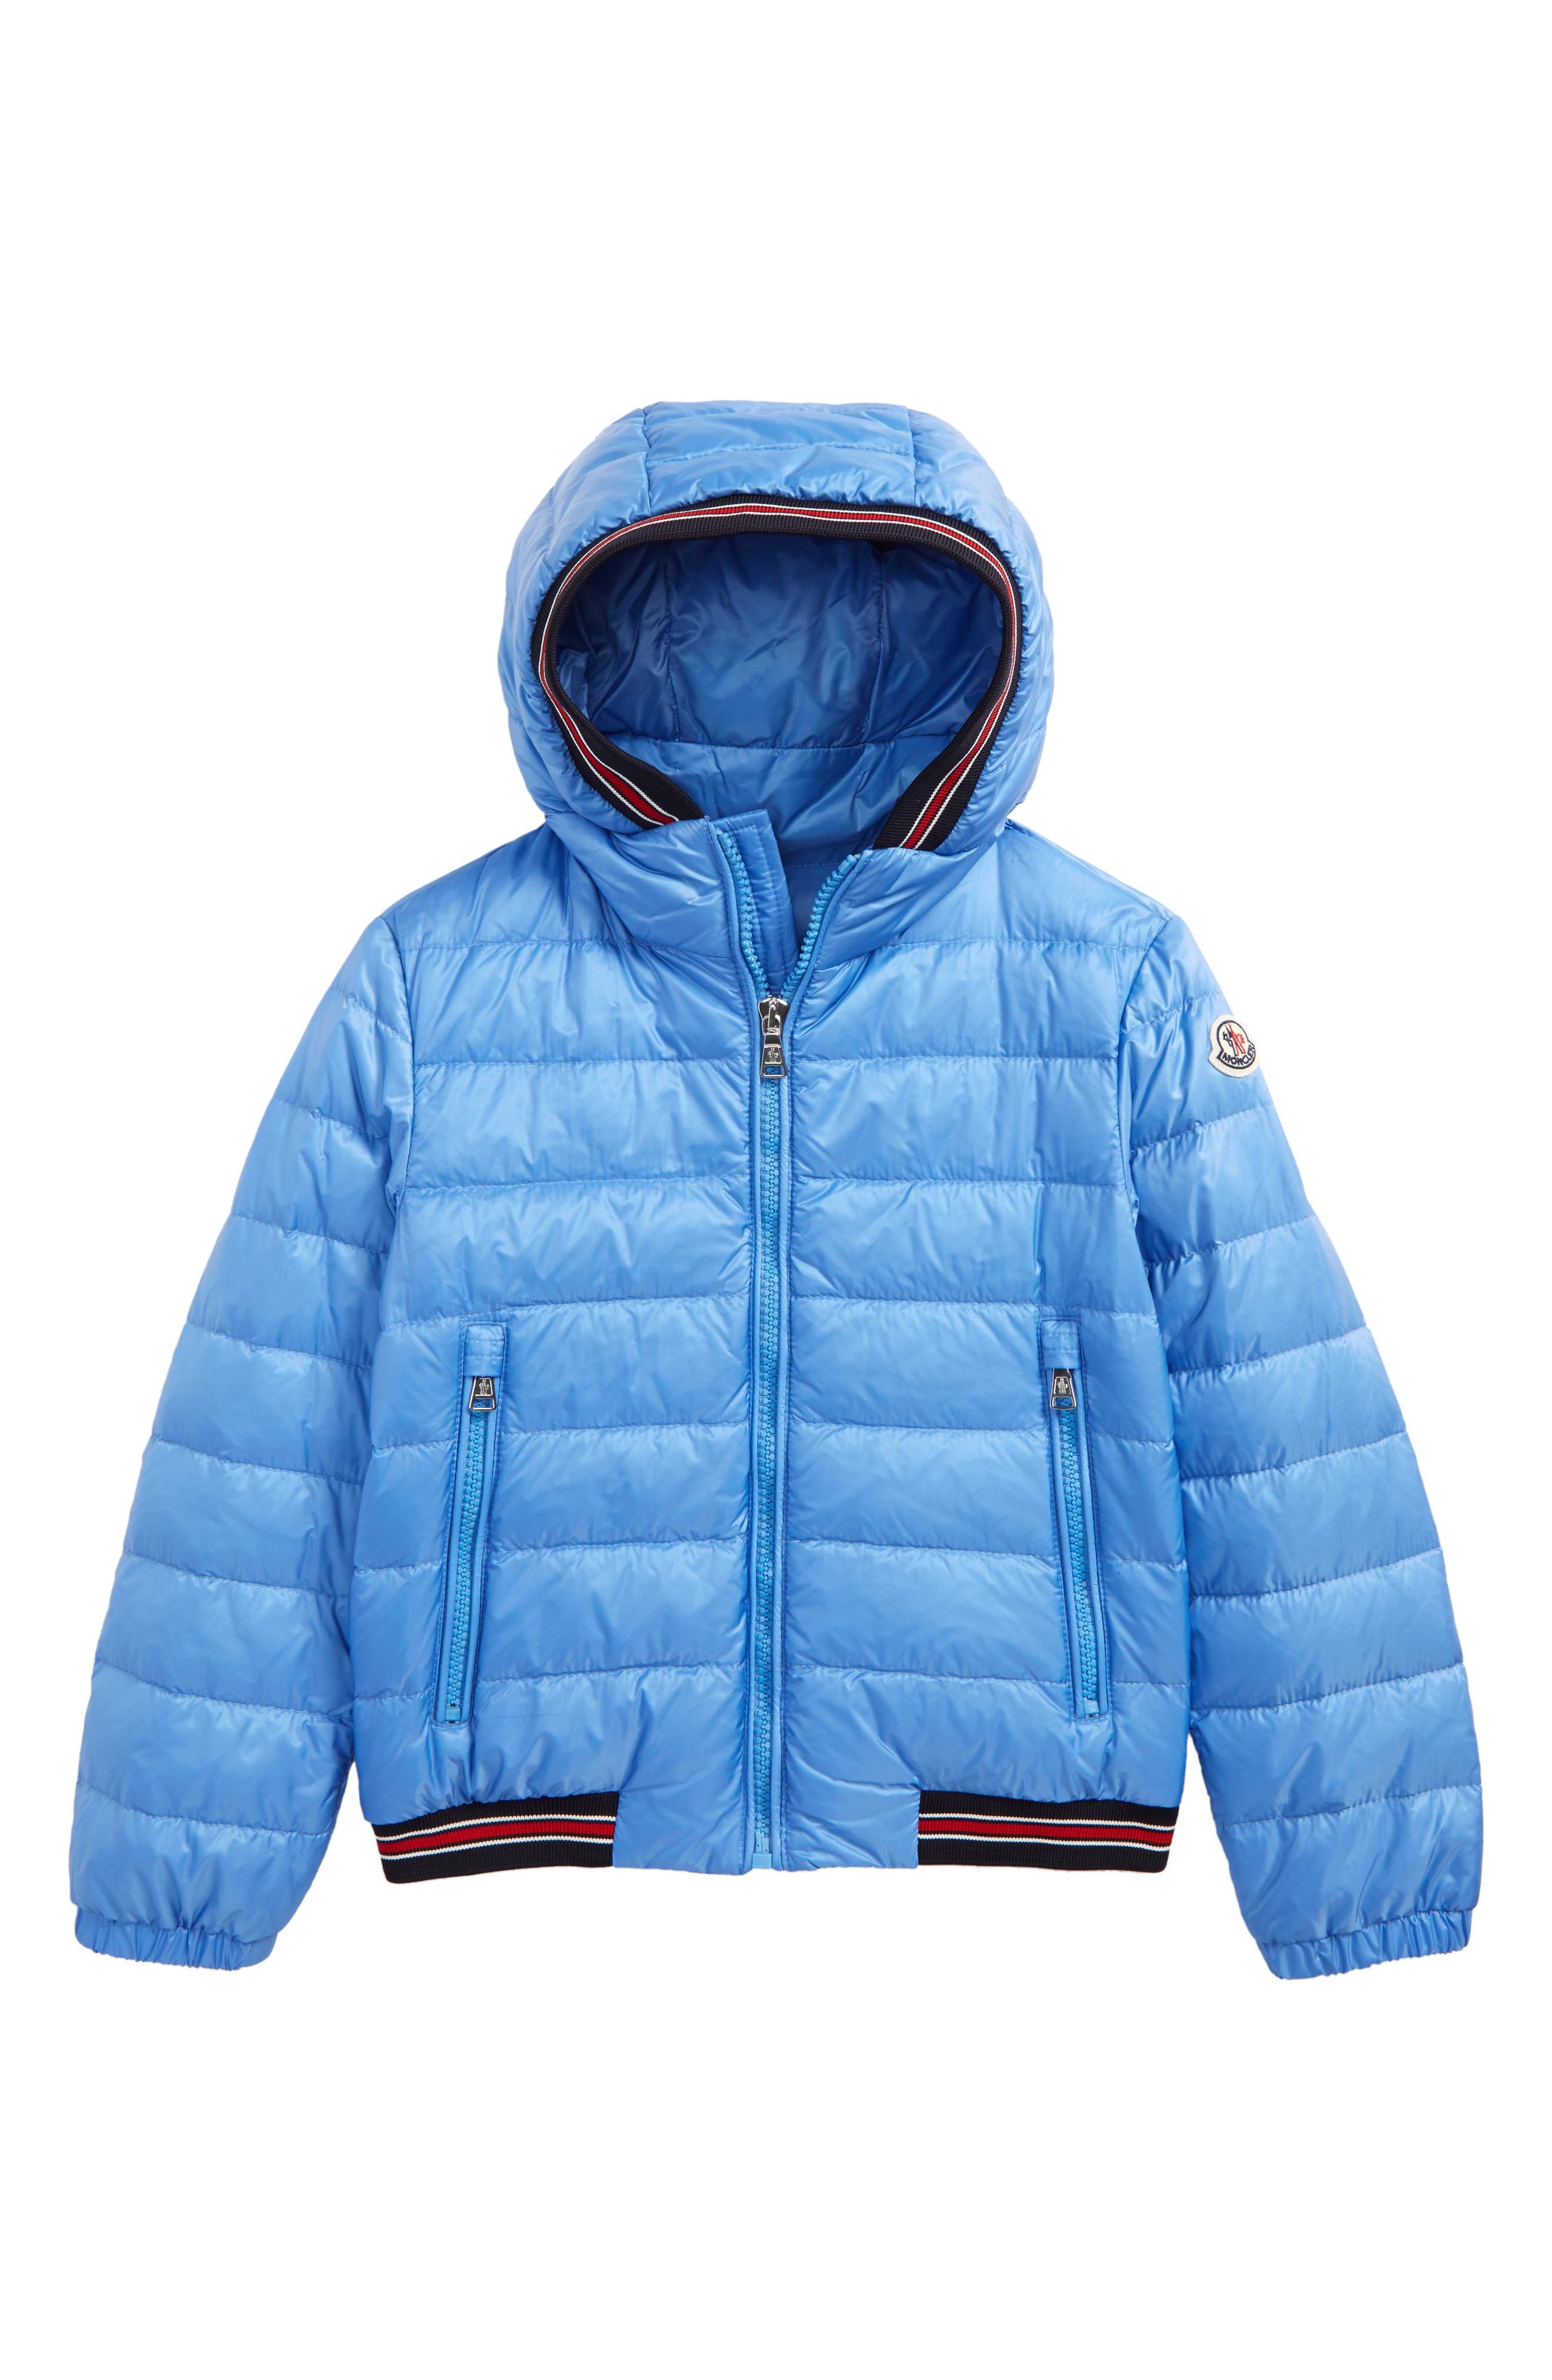 Eliot Hooded Goose Down Jacket,                             Main thumbnail 1, color,                             Pastel Blue